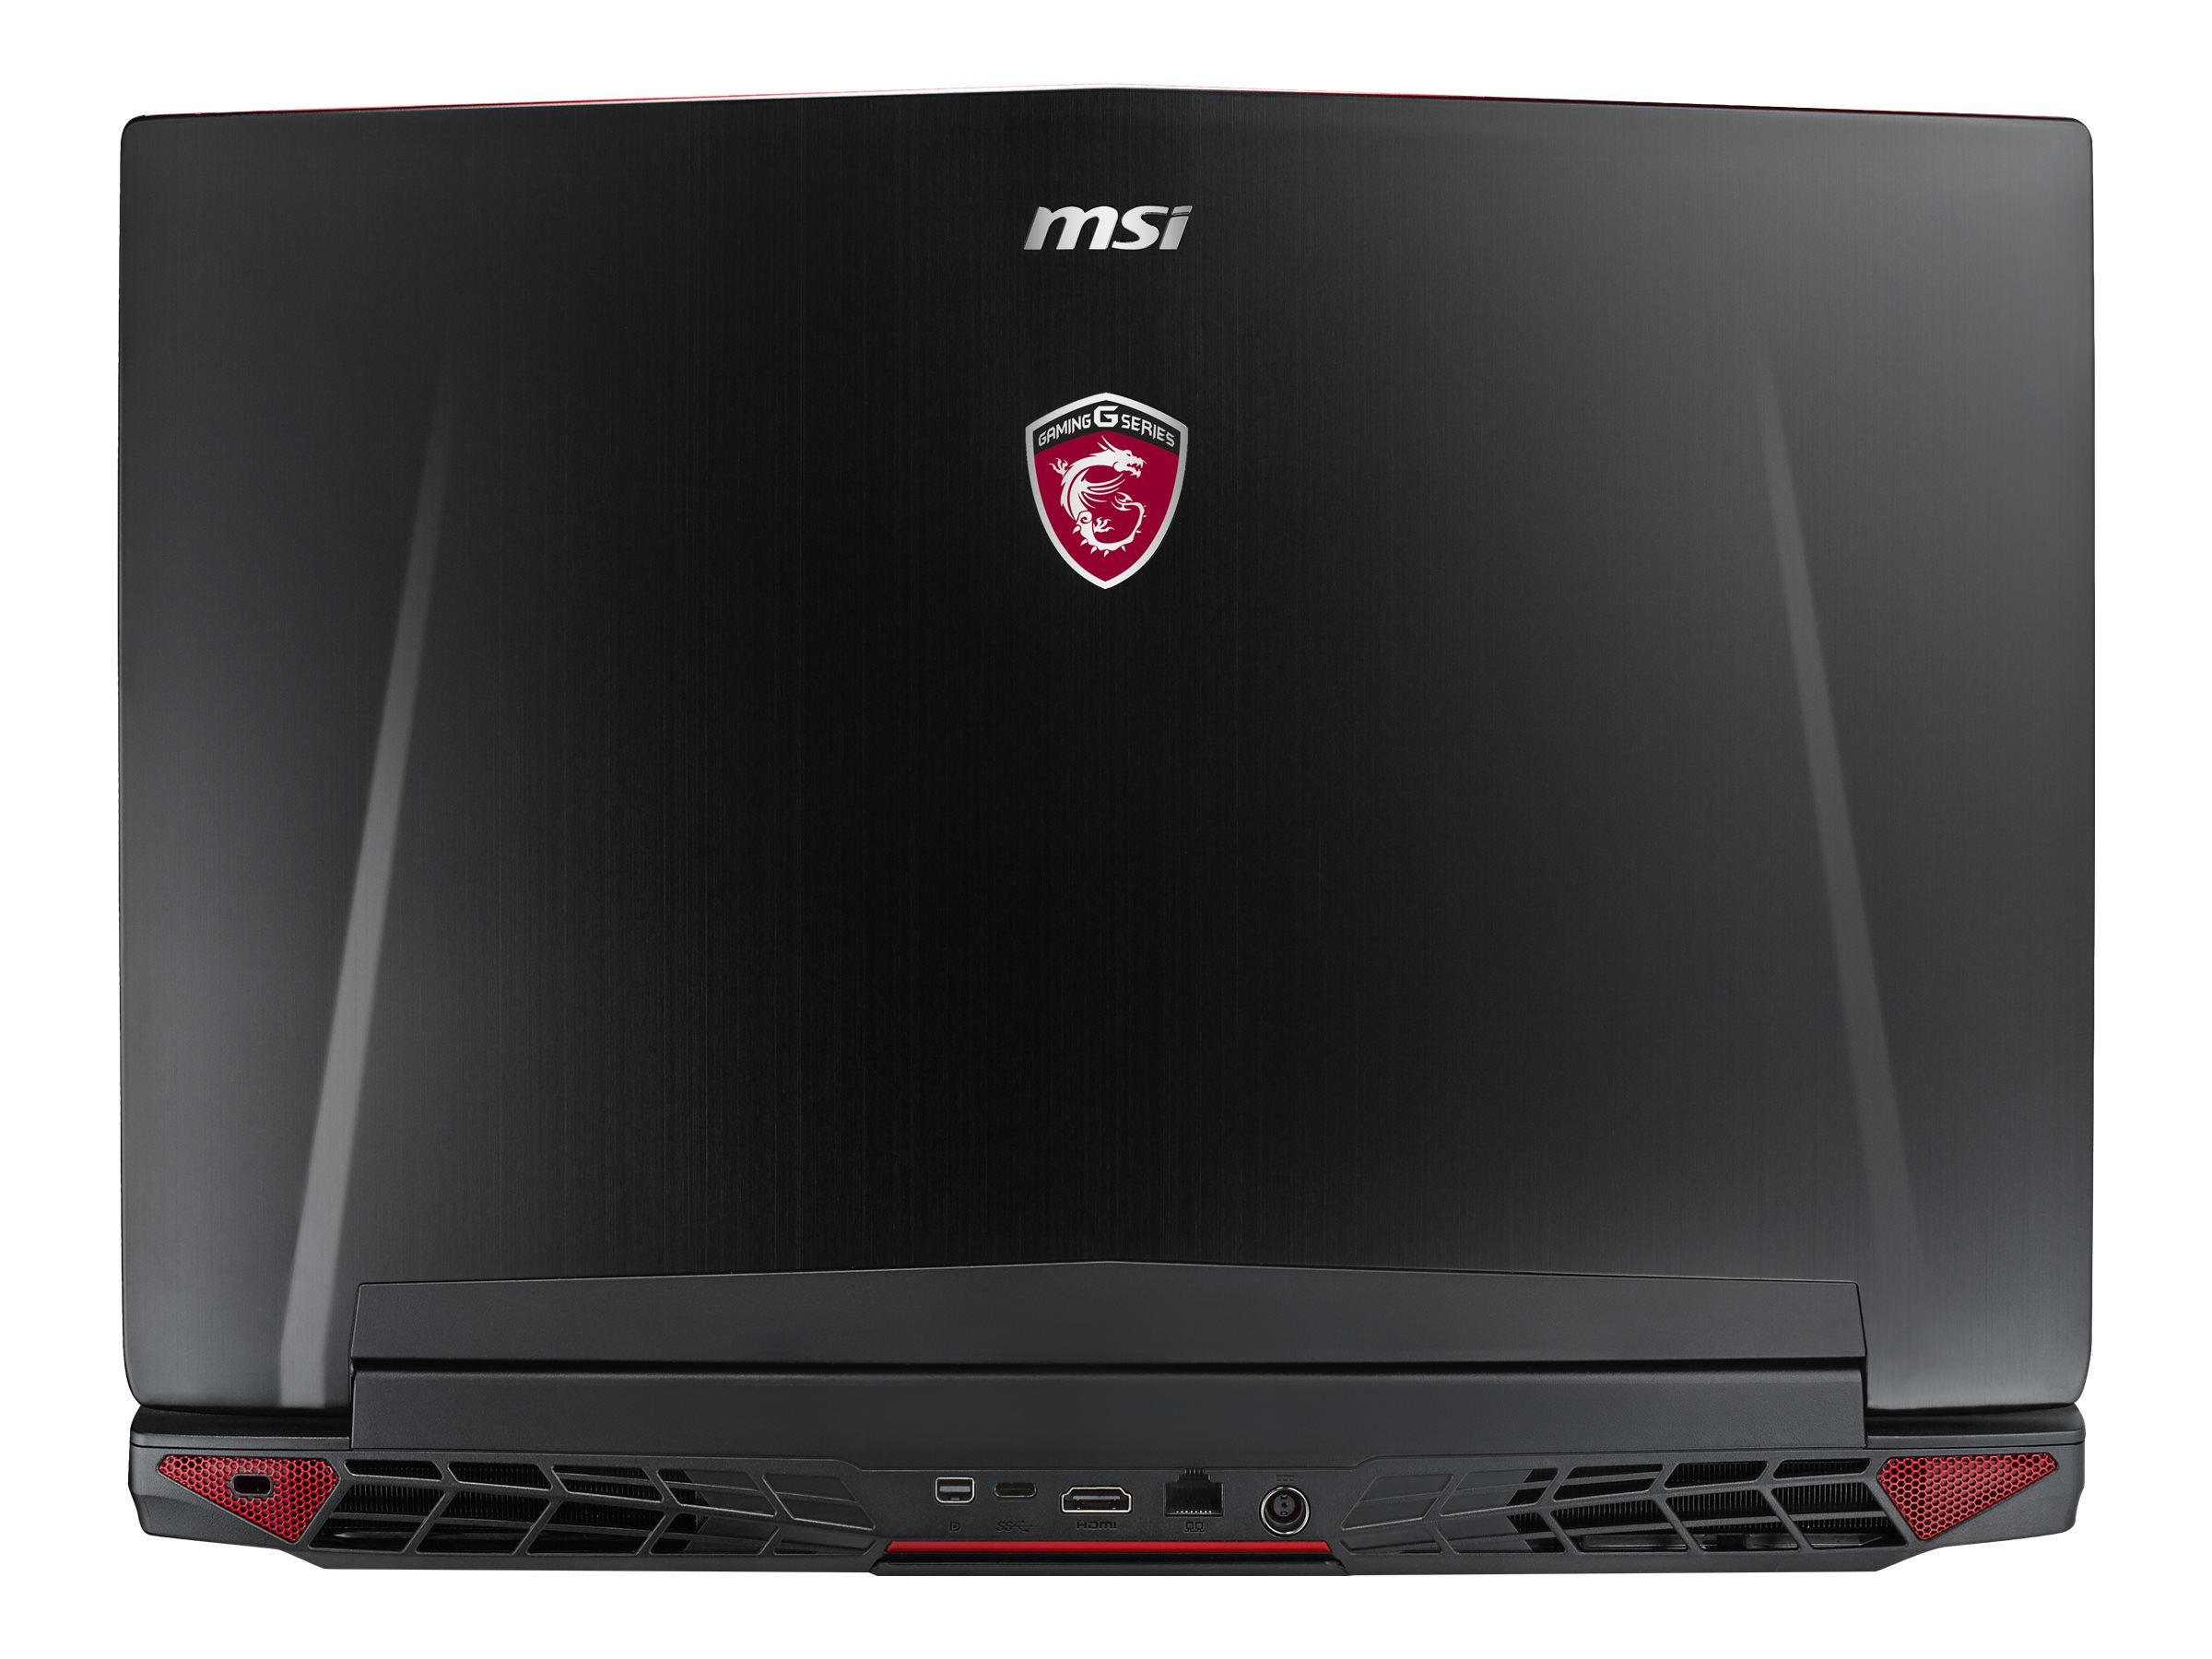 MSI Computer GT72VR286 Image 6